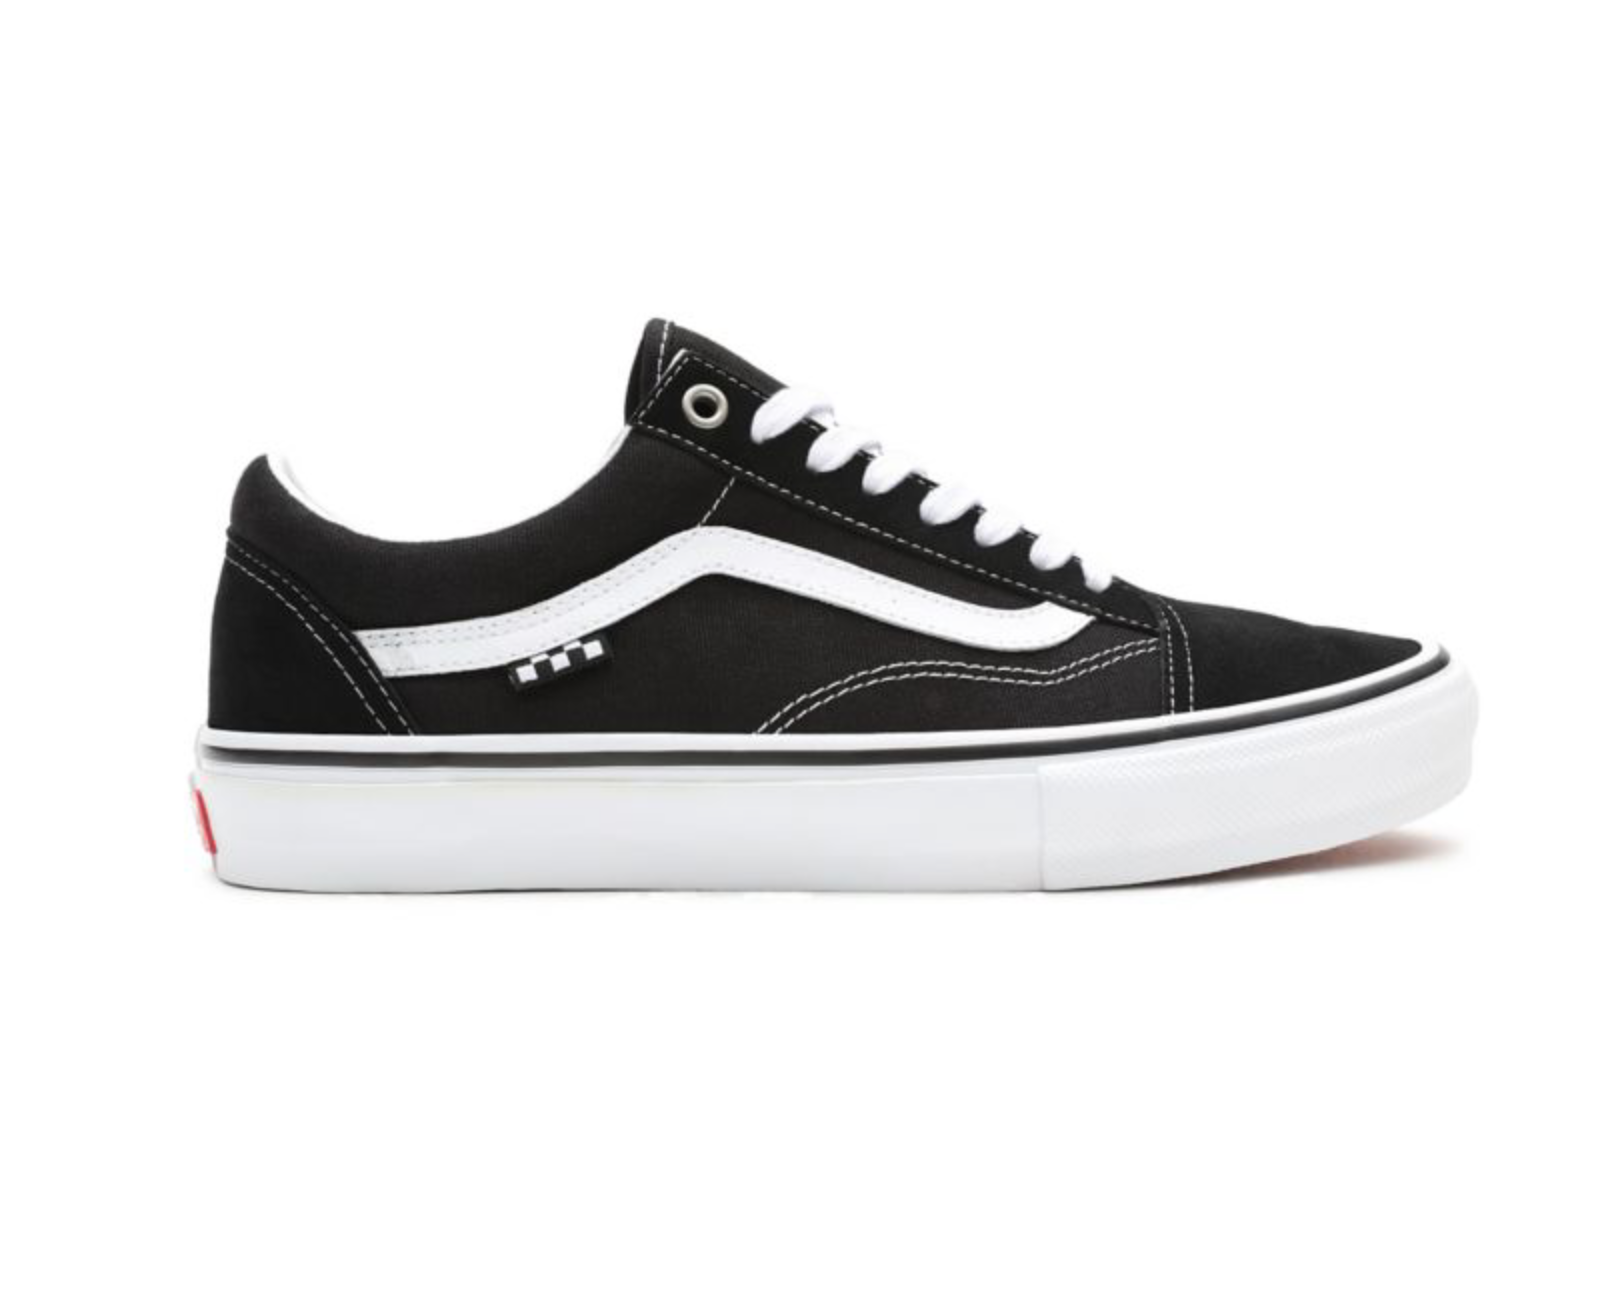 Vans Skate Old Skool